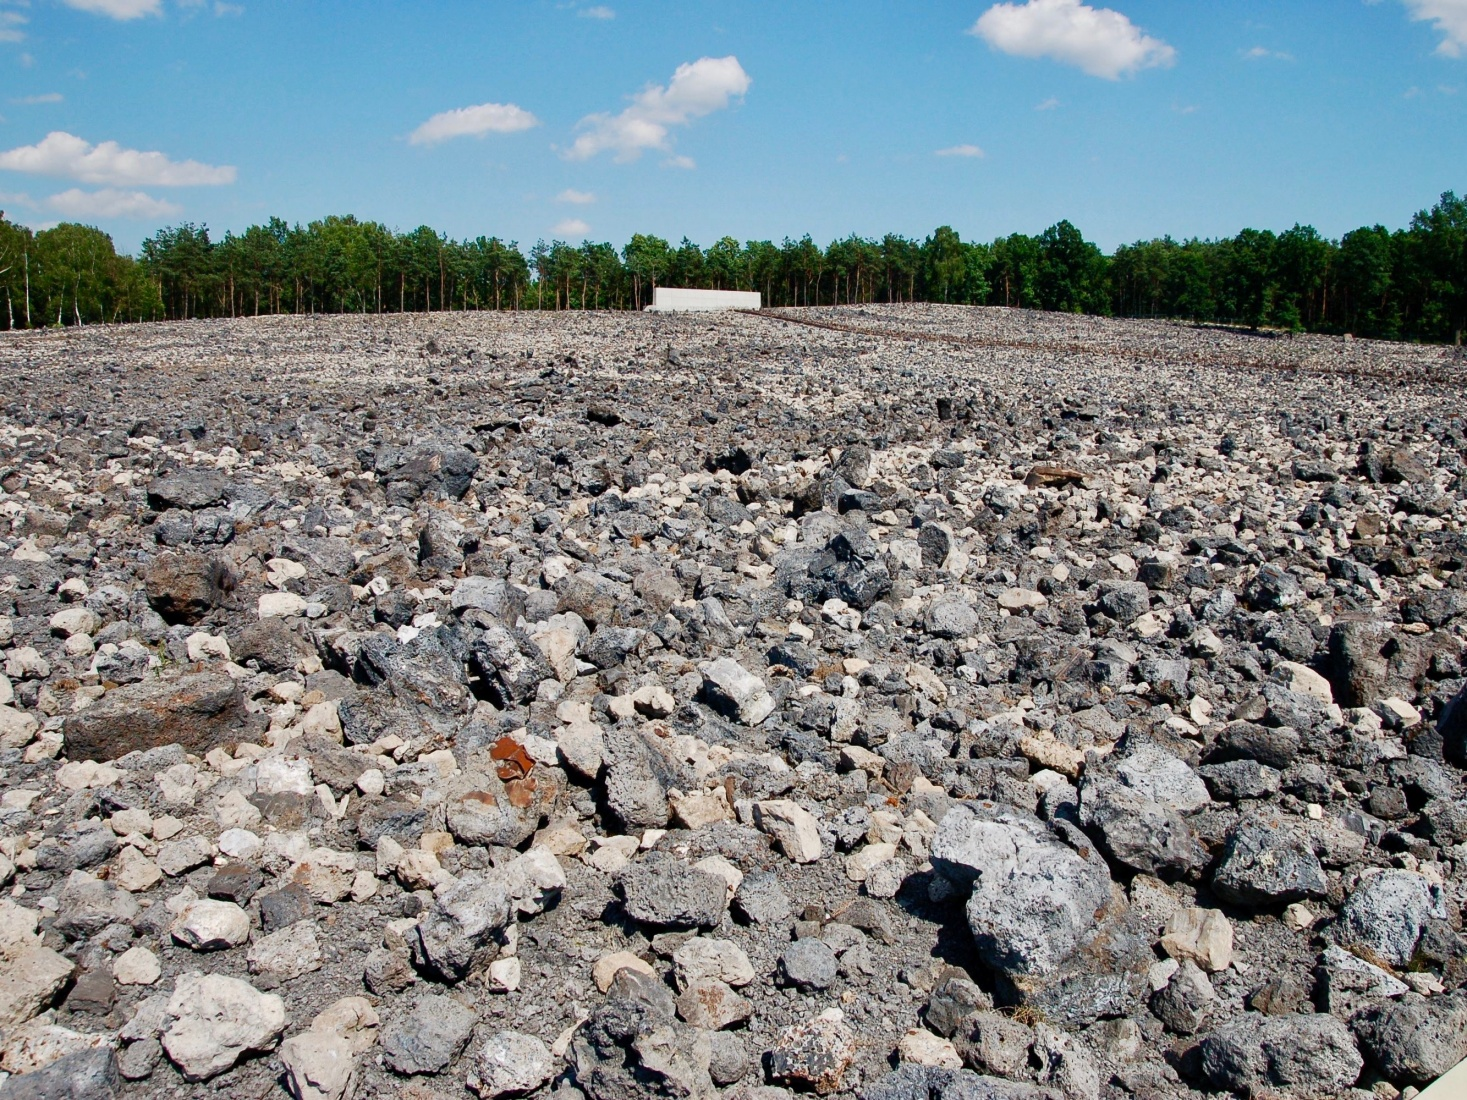 The remains of the Bełżec extermination camp in Poland, which the Nazis demolished before leaving.